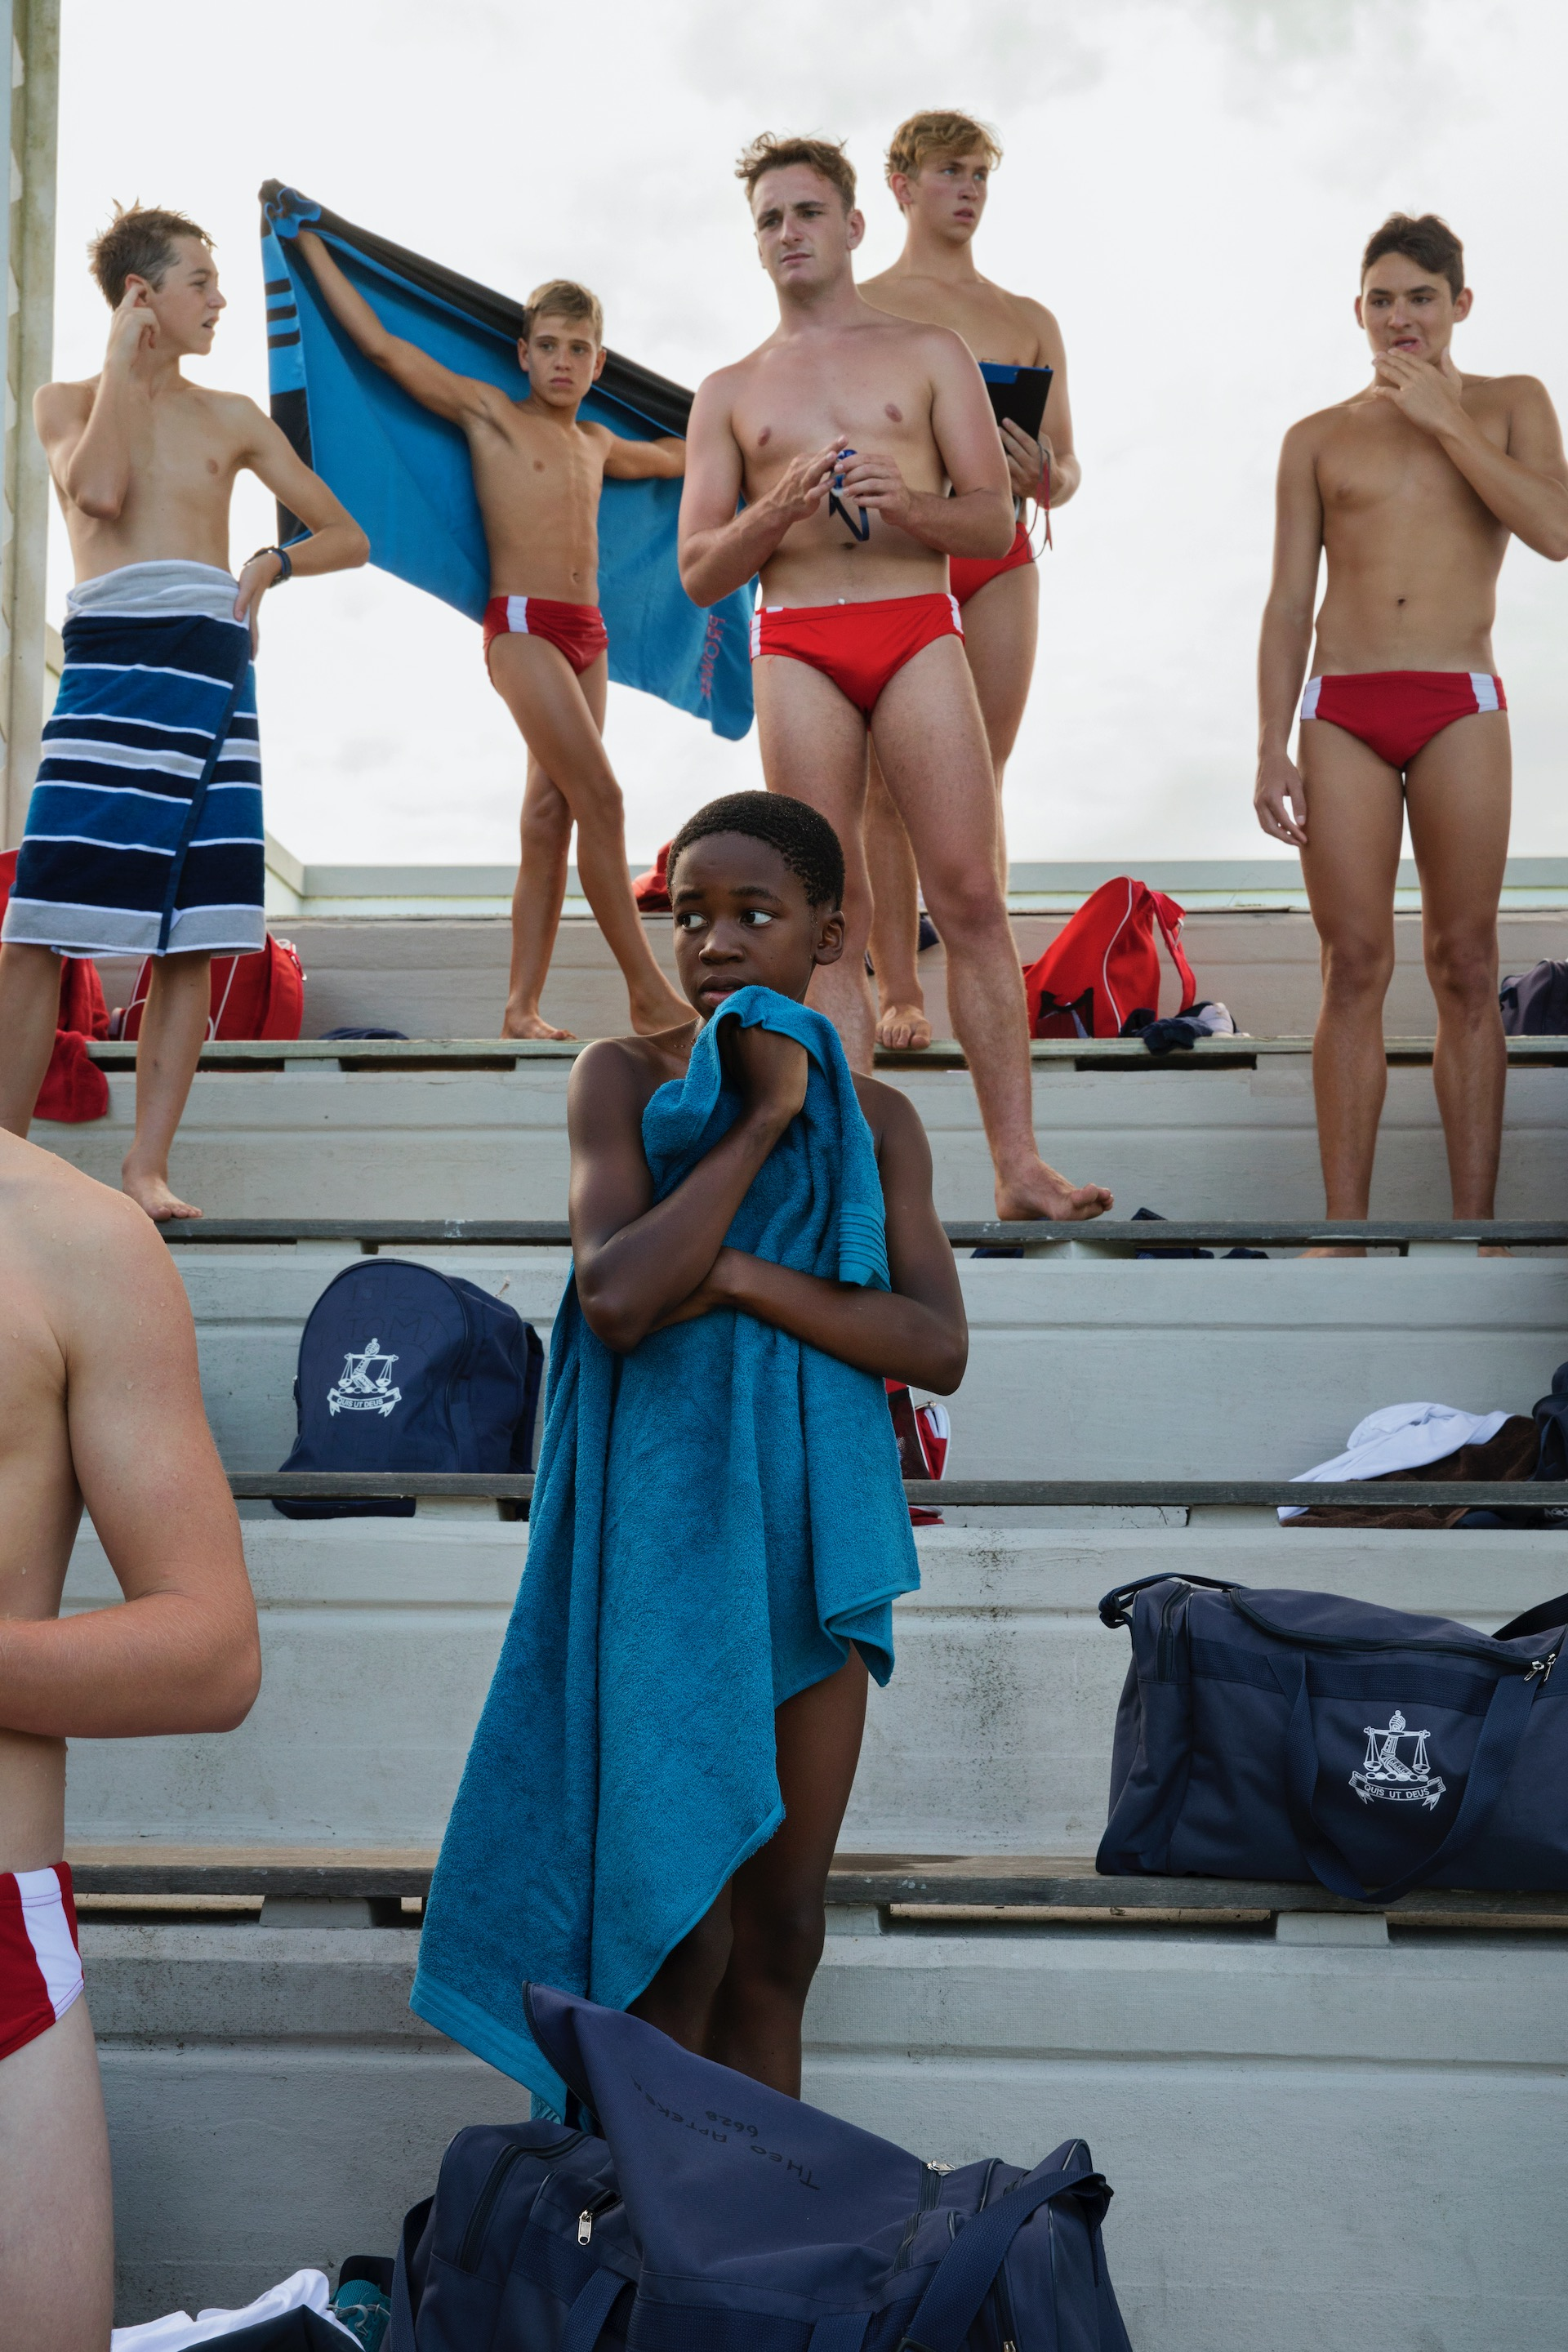 7.  The swim team of Michaelhouse, a neighbouring boarding school to Hilton College, during a swimming match at boarding school Hilton College in Hilton, South Africa. Most boarding schools used to be all-white during apartheid, but since the '90s the schools are all mixed. (2019)